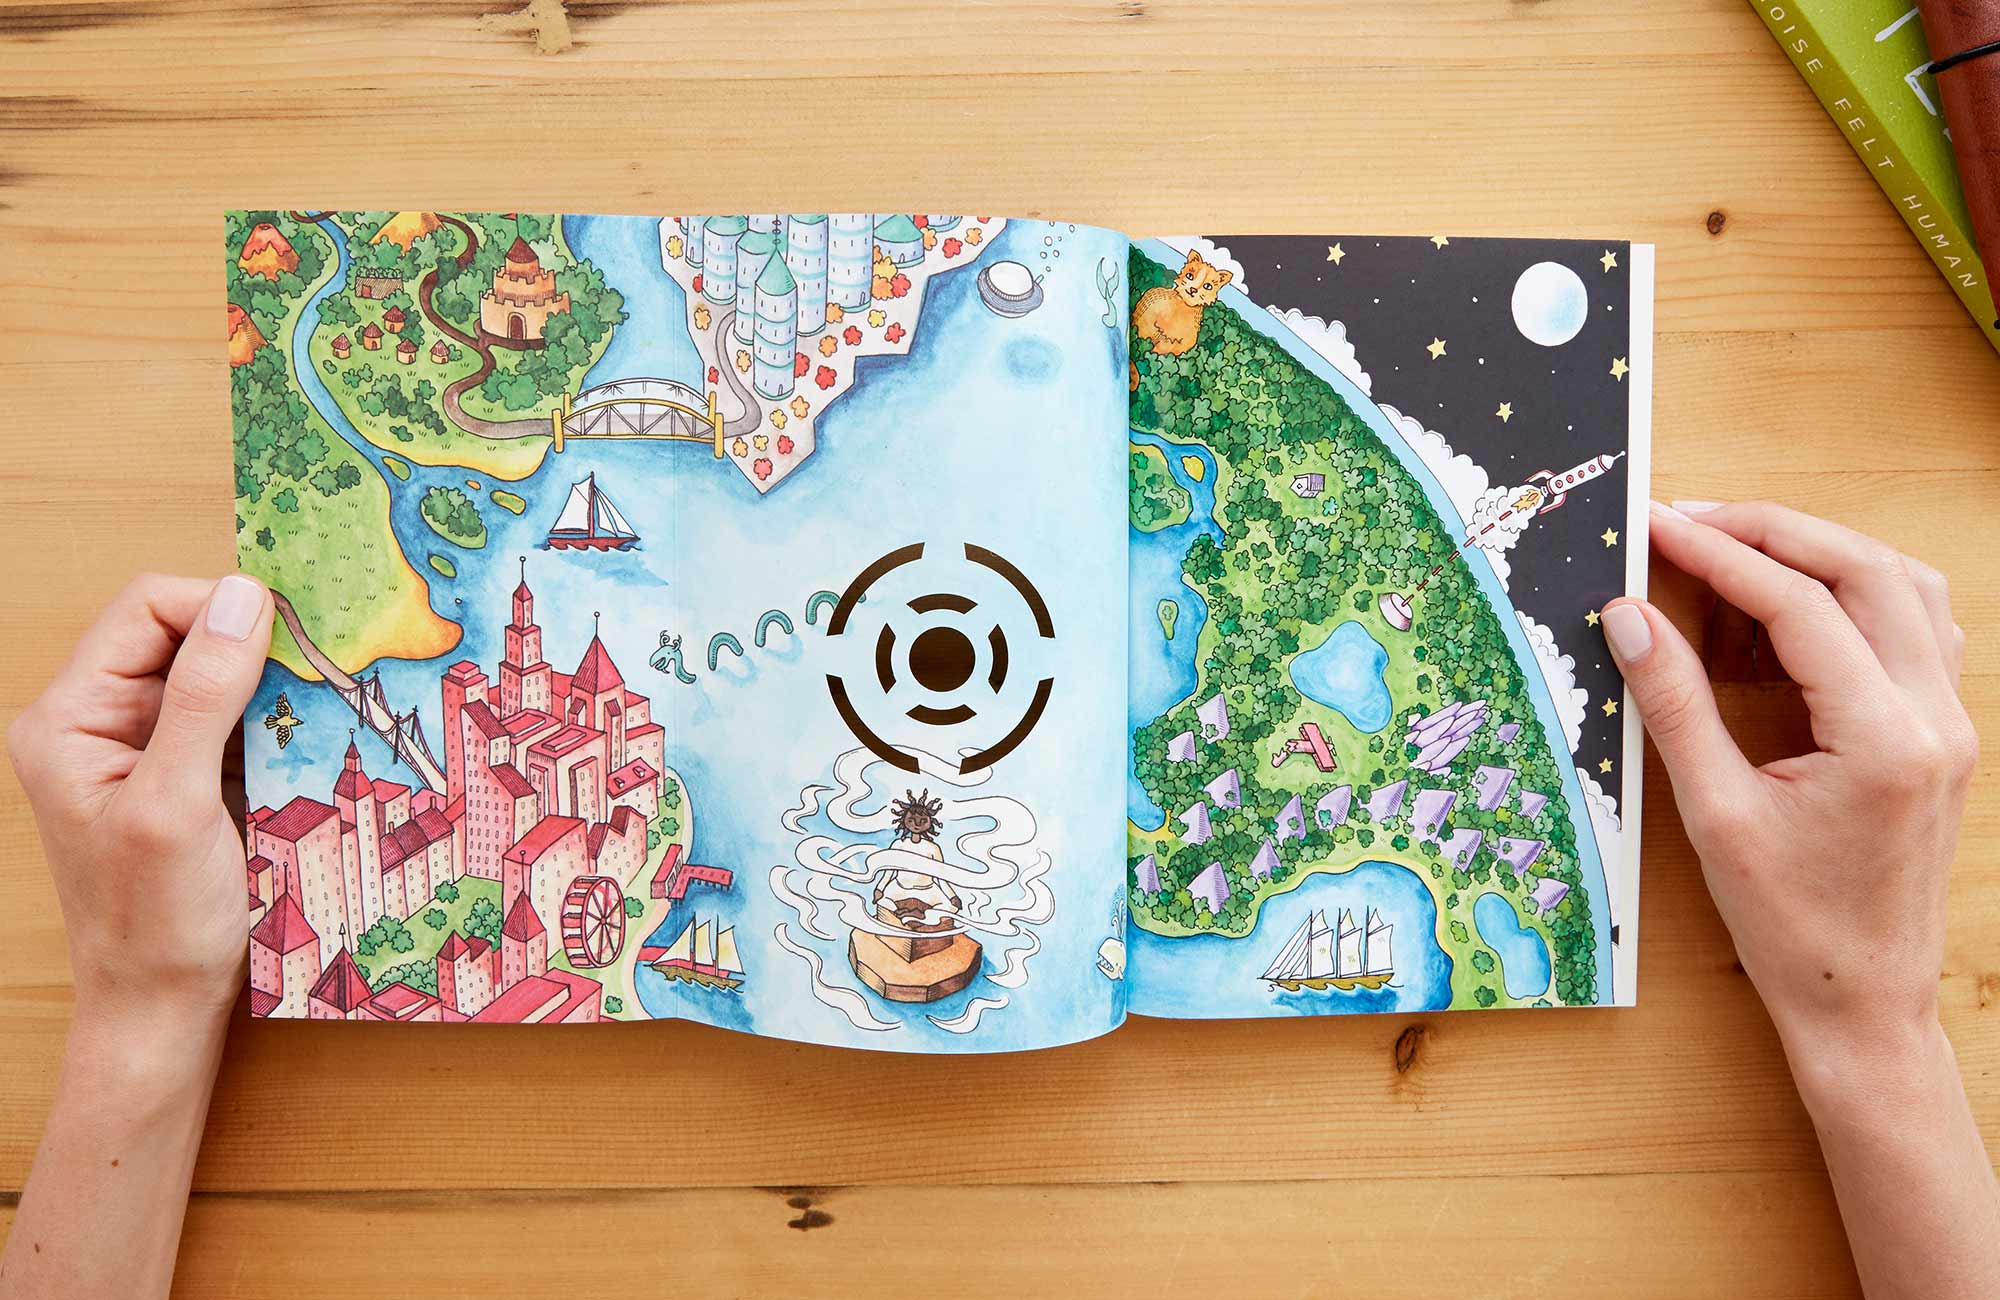 Inside front cover unfolded to show a bright, imagination-filled map